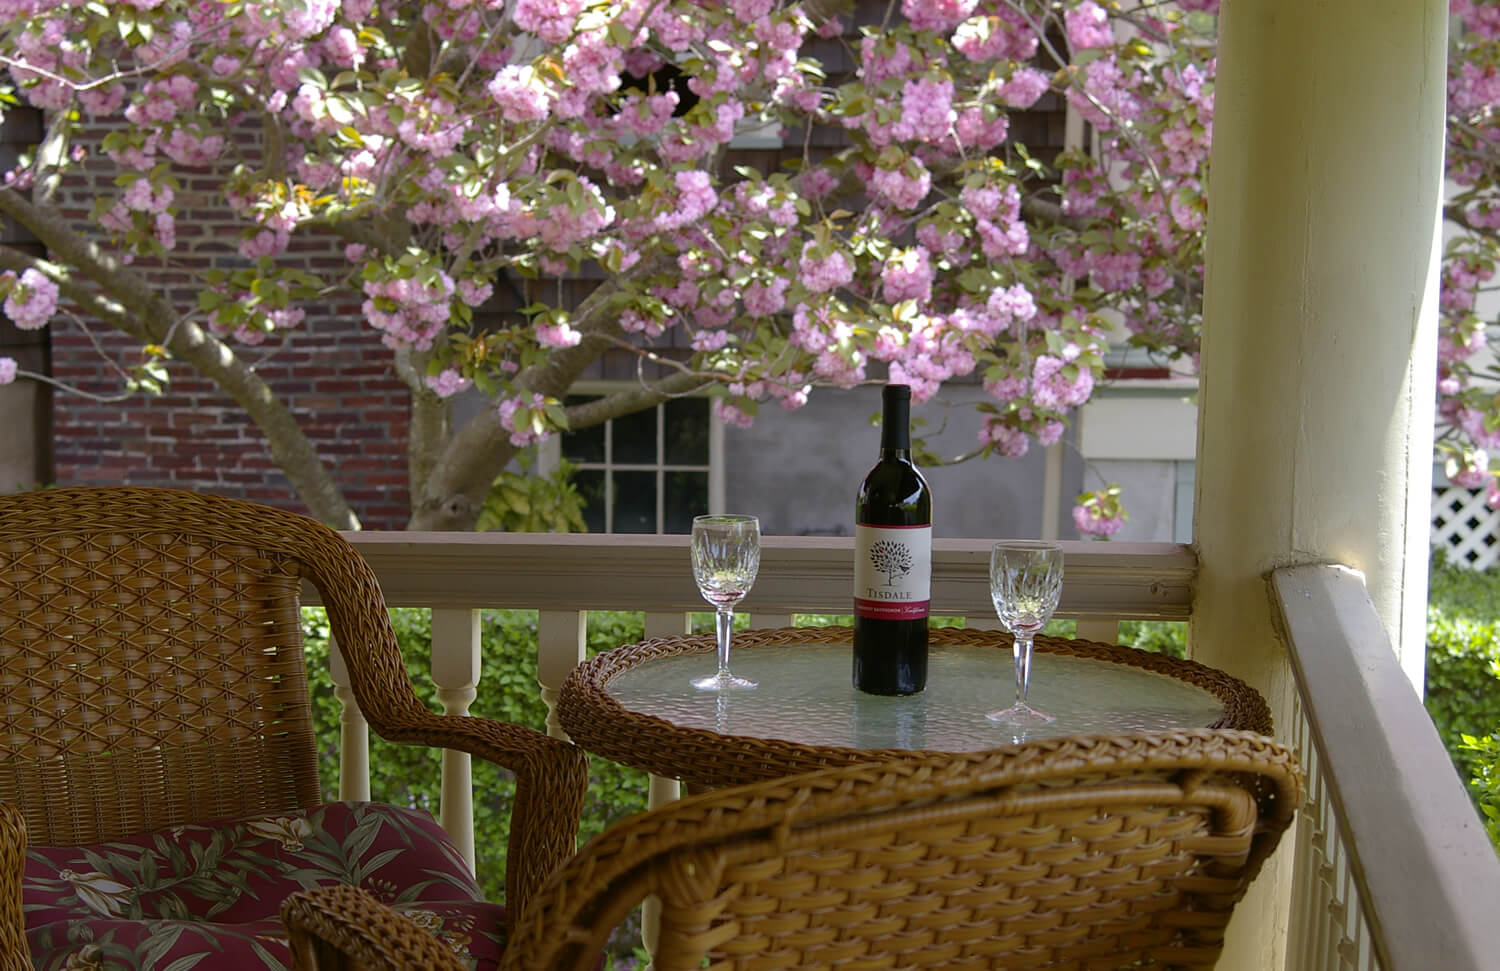 Exterior porch table with 2 wineglasses and a bottle of red wine with an ornamental flowering tree